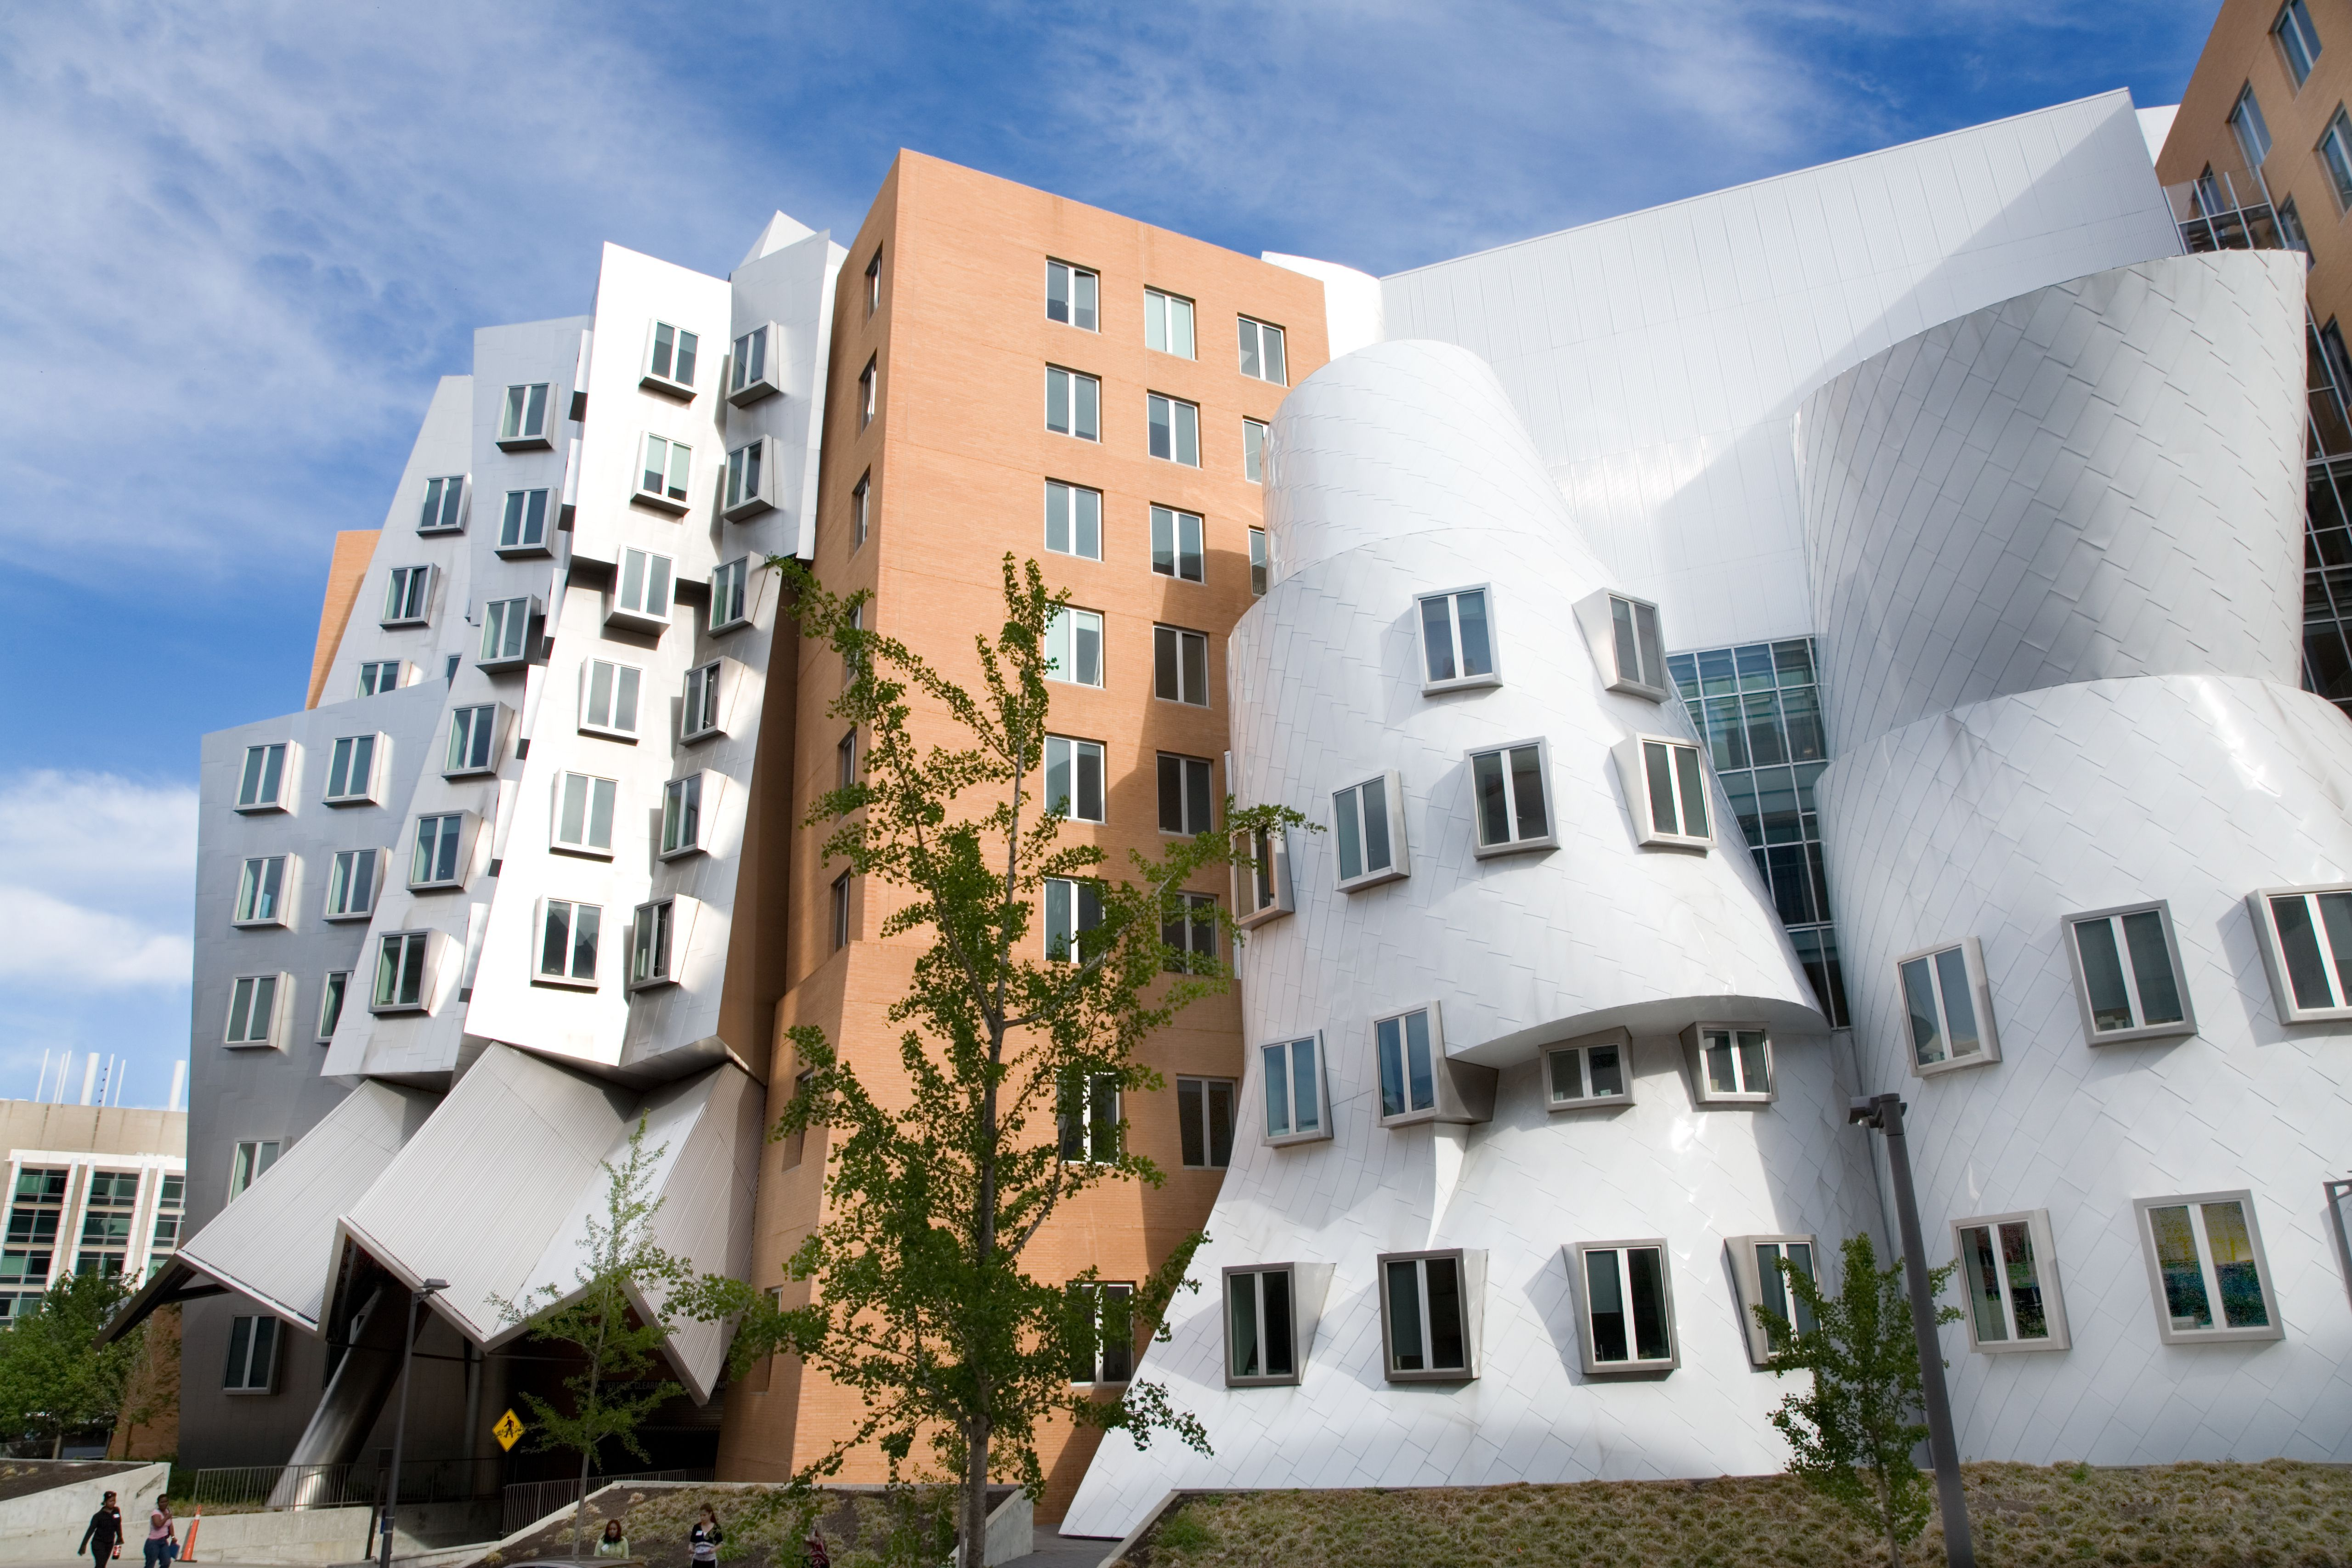 The Ray and Maria Stata Center, designed by Frank Gehry, is an odd jumble of lopsided buildings. The Center houses three departments